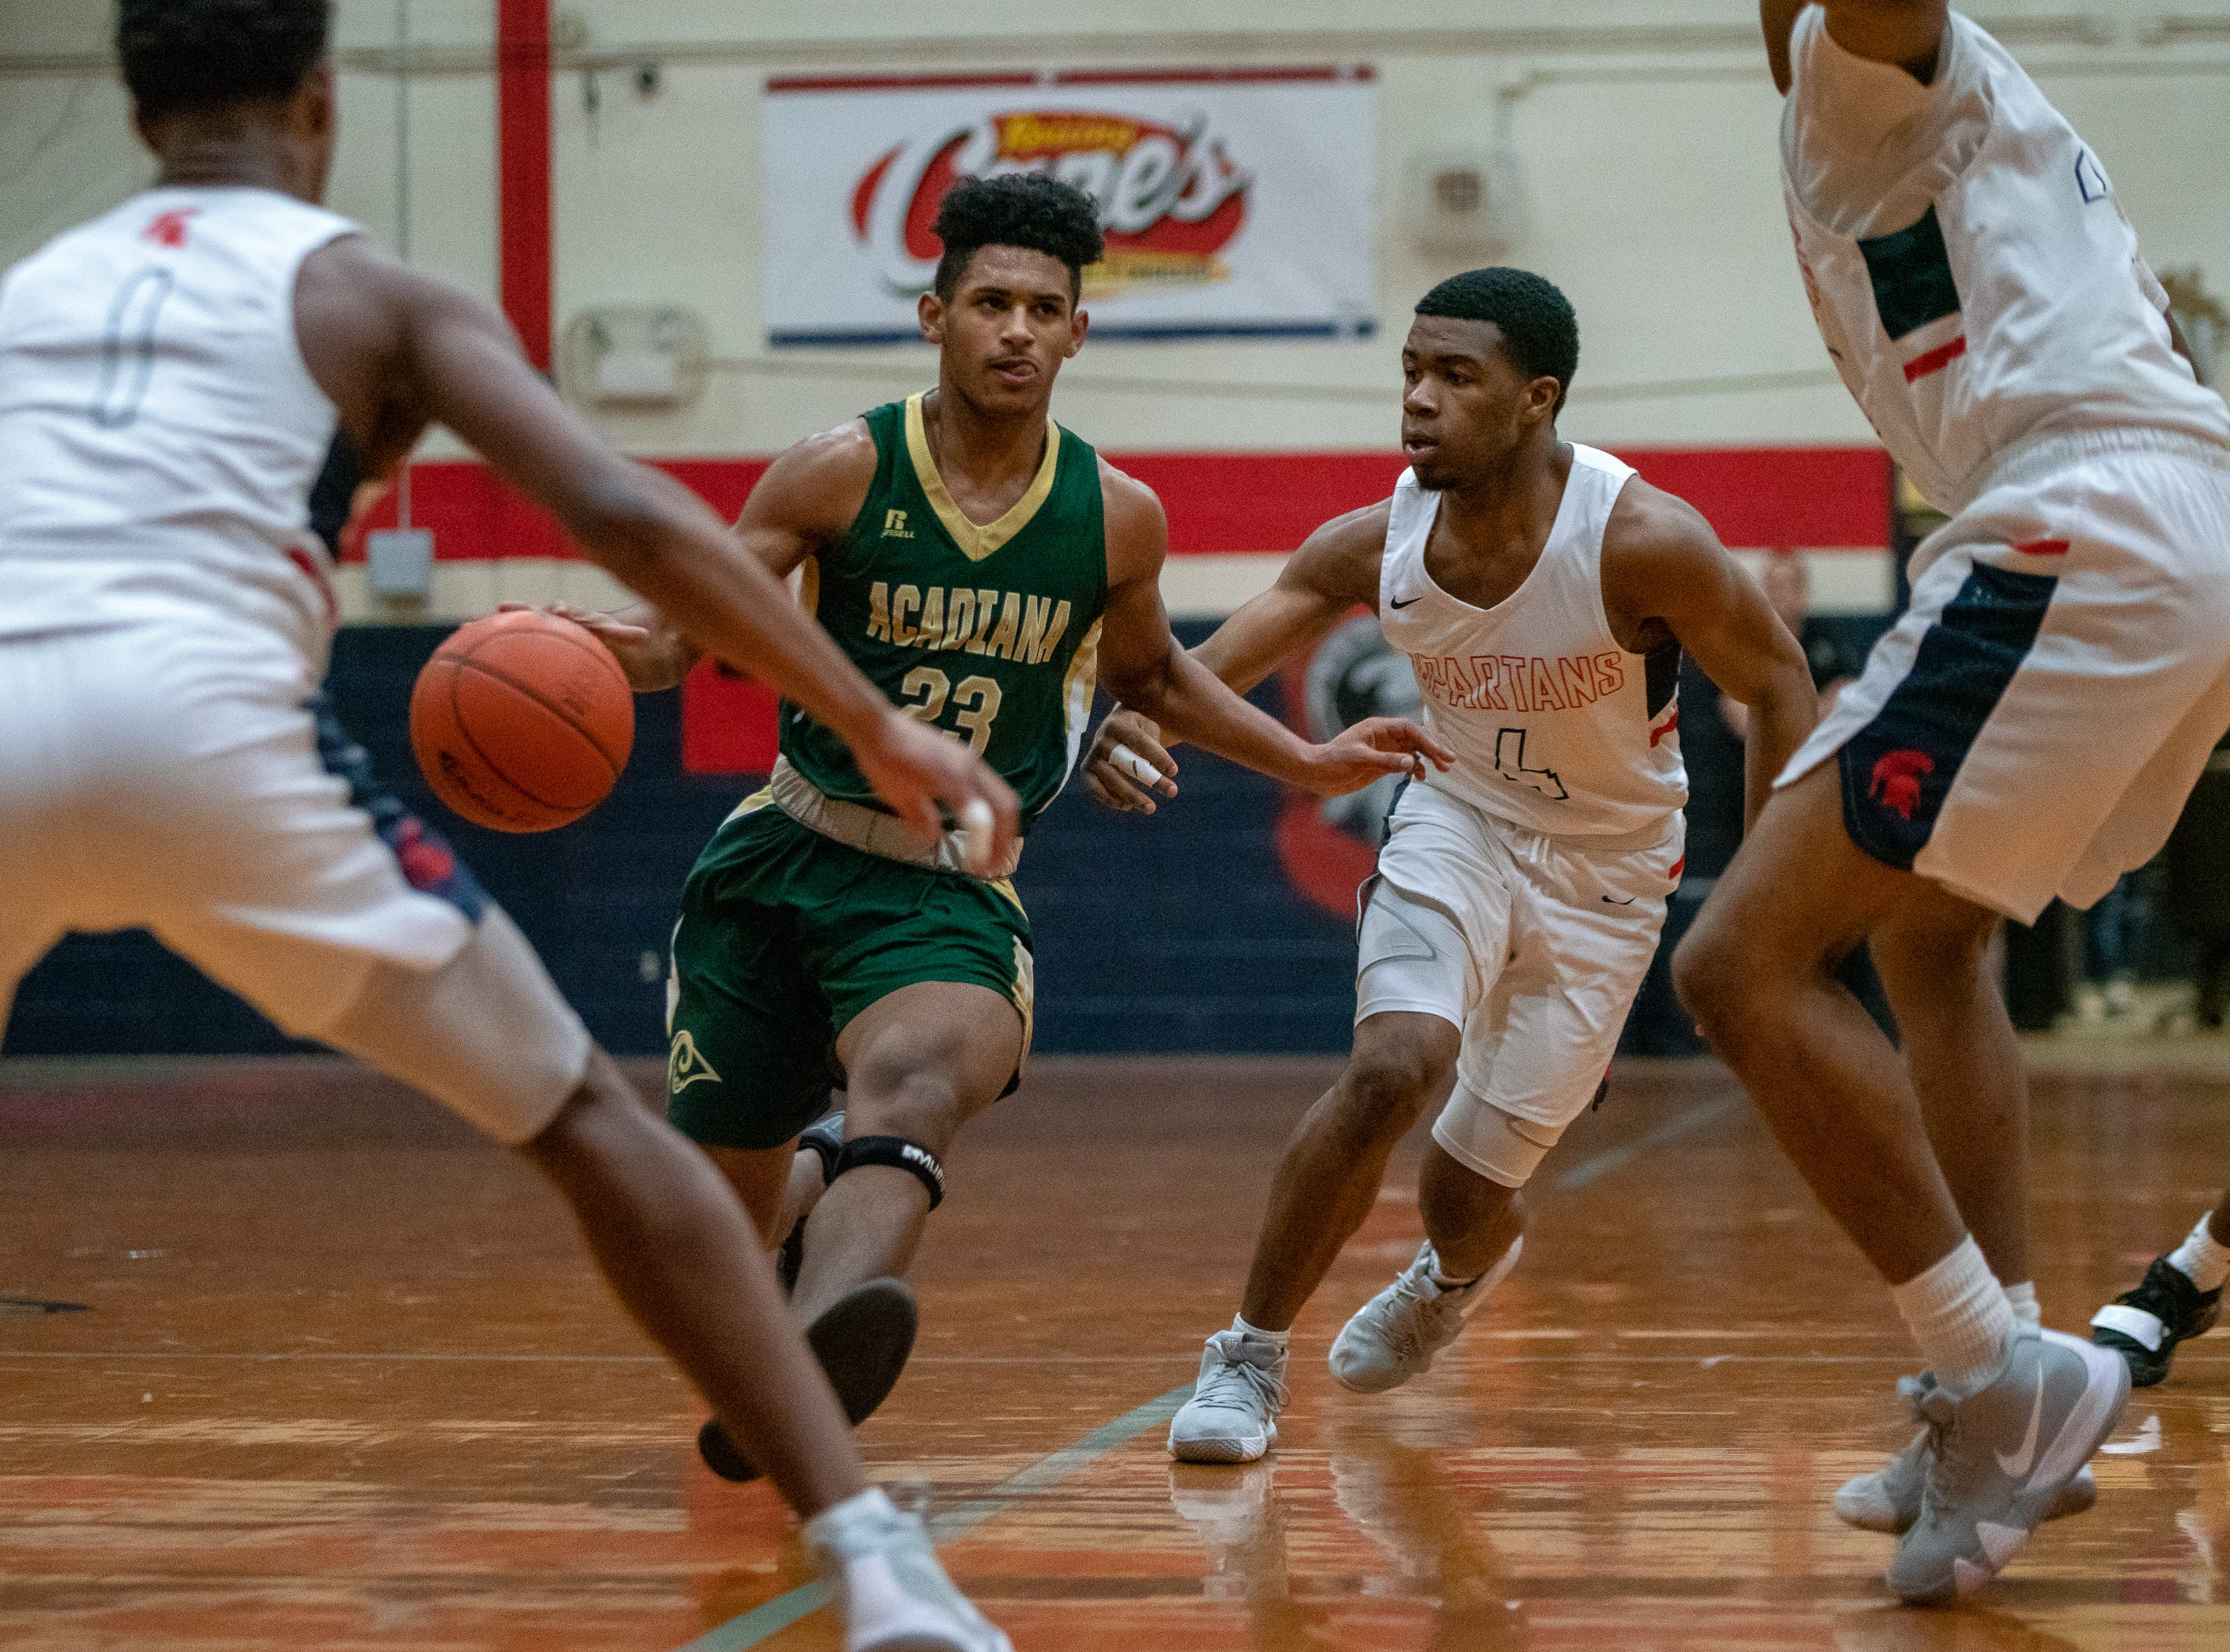 Acadiana High's Keontae Williams (23) moves the ball towards the basket as the Comeaux High Spartans take on the Acadiana High Wreckin' Rams at Comeaux high school on Jan. 25, 2019.